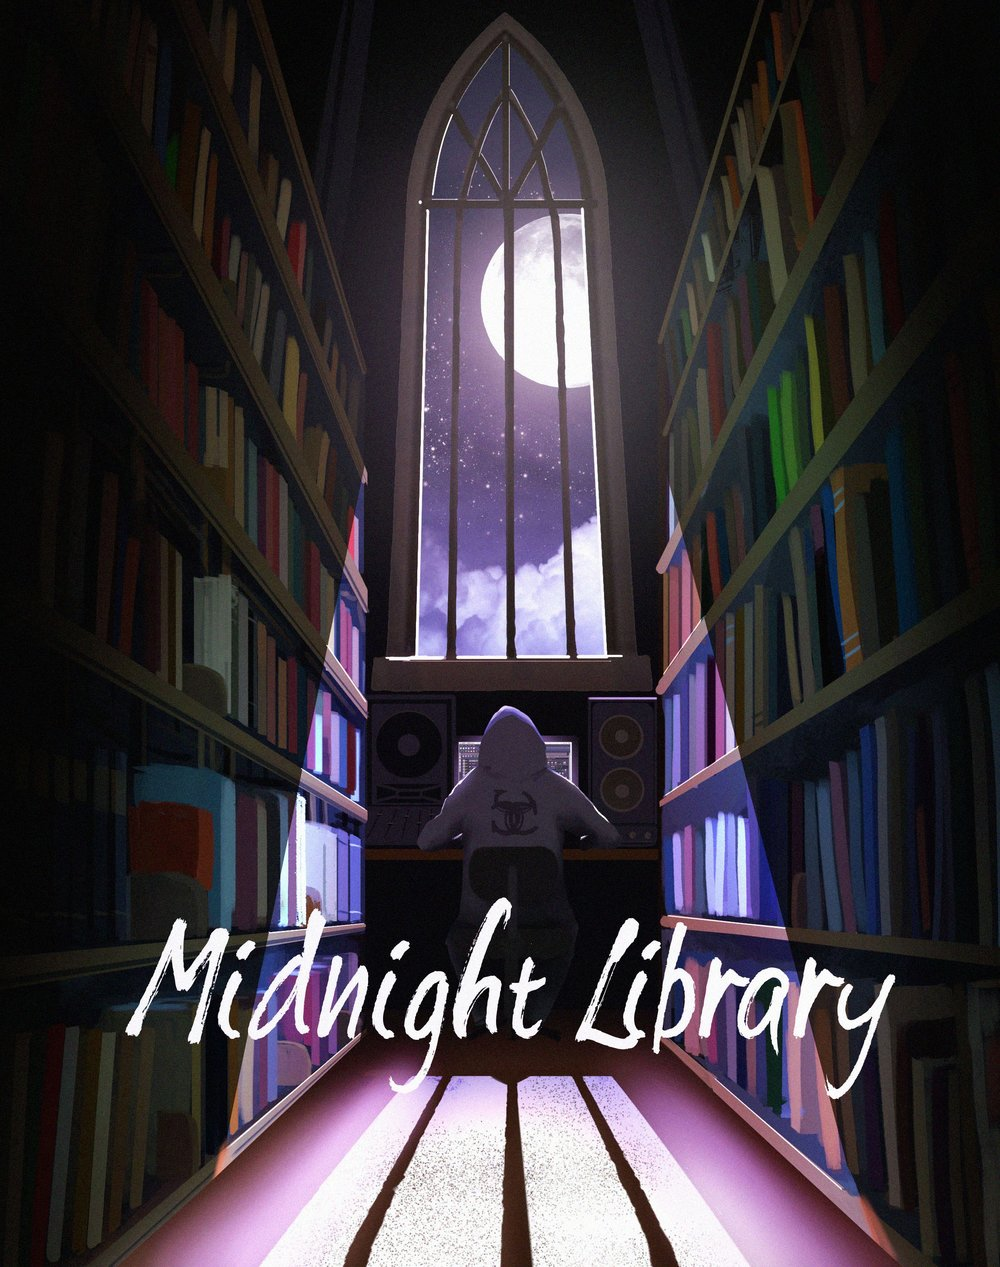 MC David J - Midnight Library